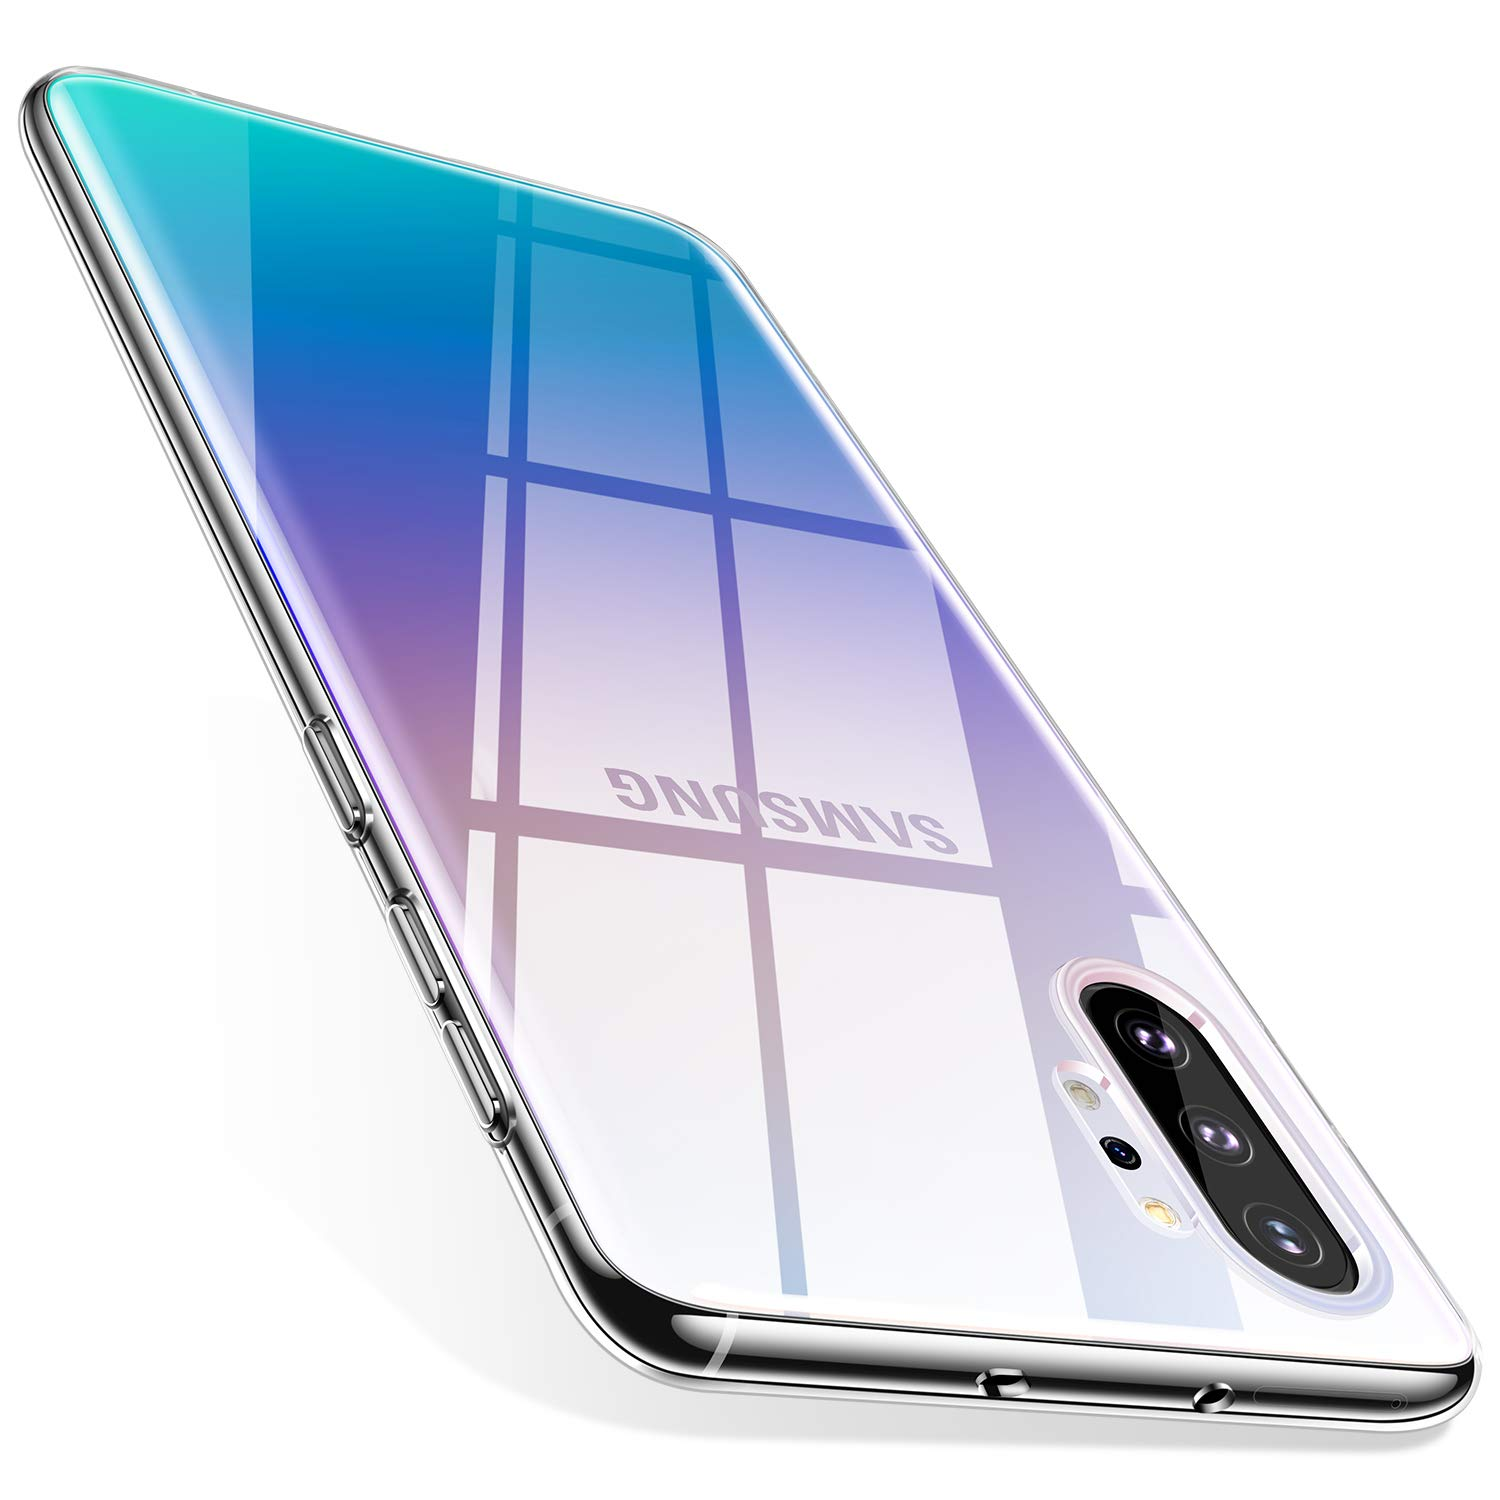 TORRAS Galaxy Note 10 Plus Case/Galaxy Note 10 Plus 5G Case Crystal Clear Ultra-Thin Slim Fit Soft TPU Cover Compatible with Samsung Galaxy Note 10 Plus 6.8 inch, Clear by TORRAS